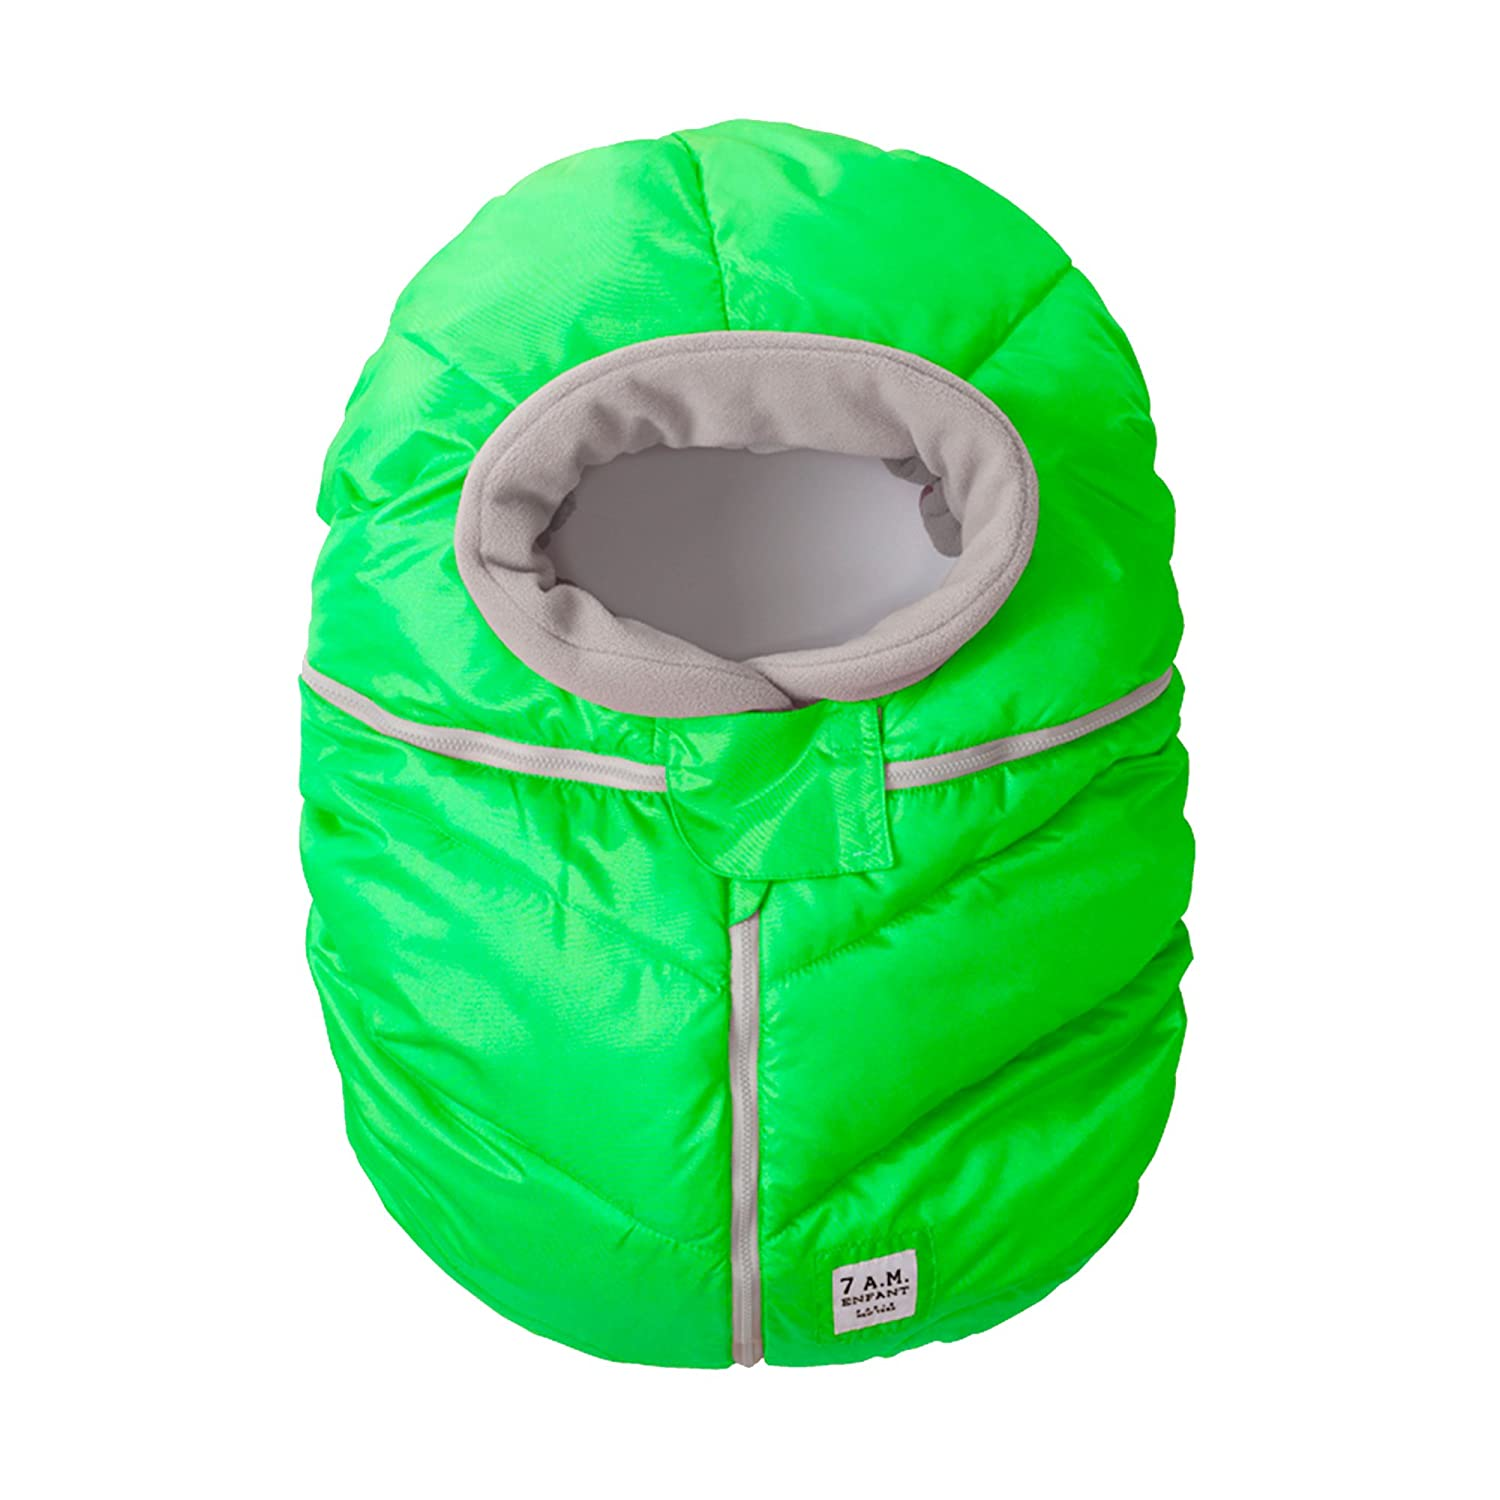 7AM Enfant Car Seat Cocoon: Infant Car Seat Cover Micro-Fleece Lined with an Elasticized Base, Neon Green 7 A.M. Enfant CSC-NG